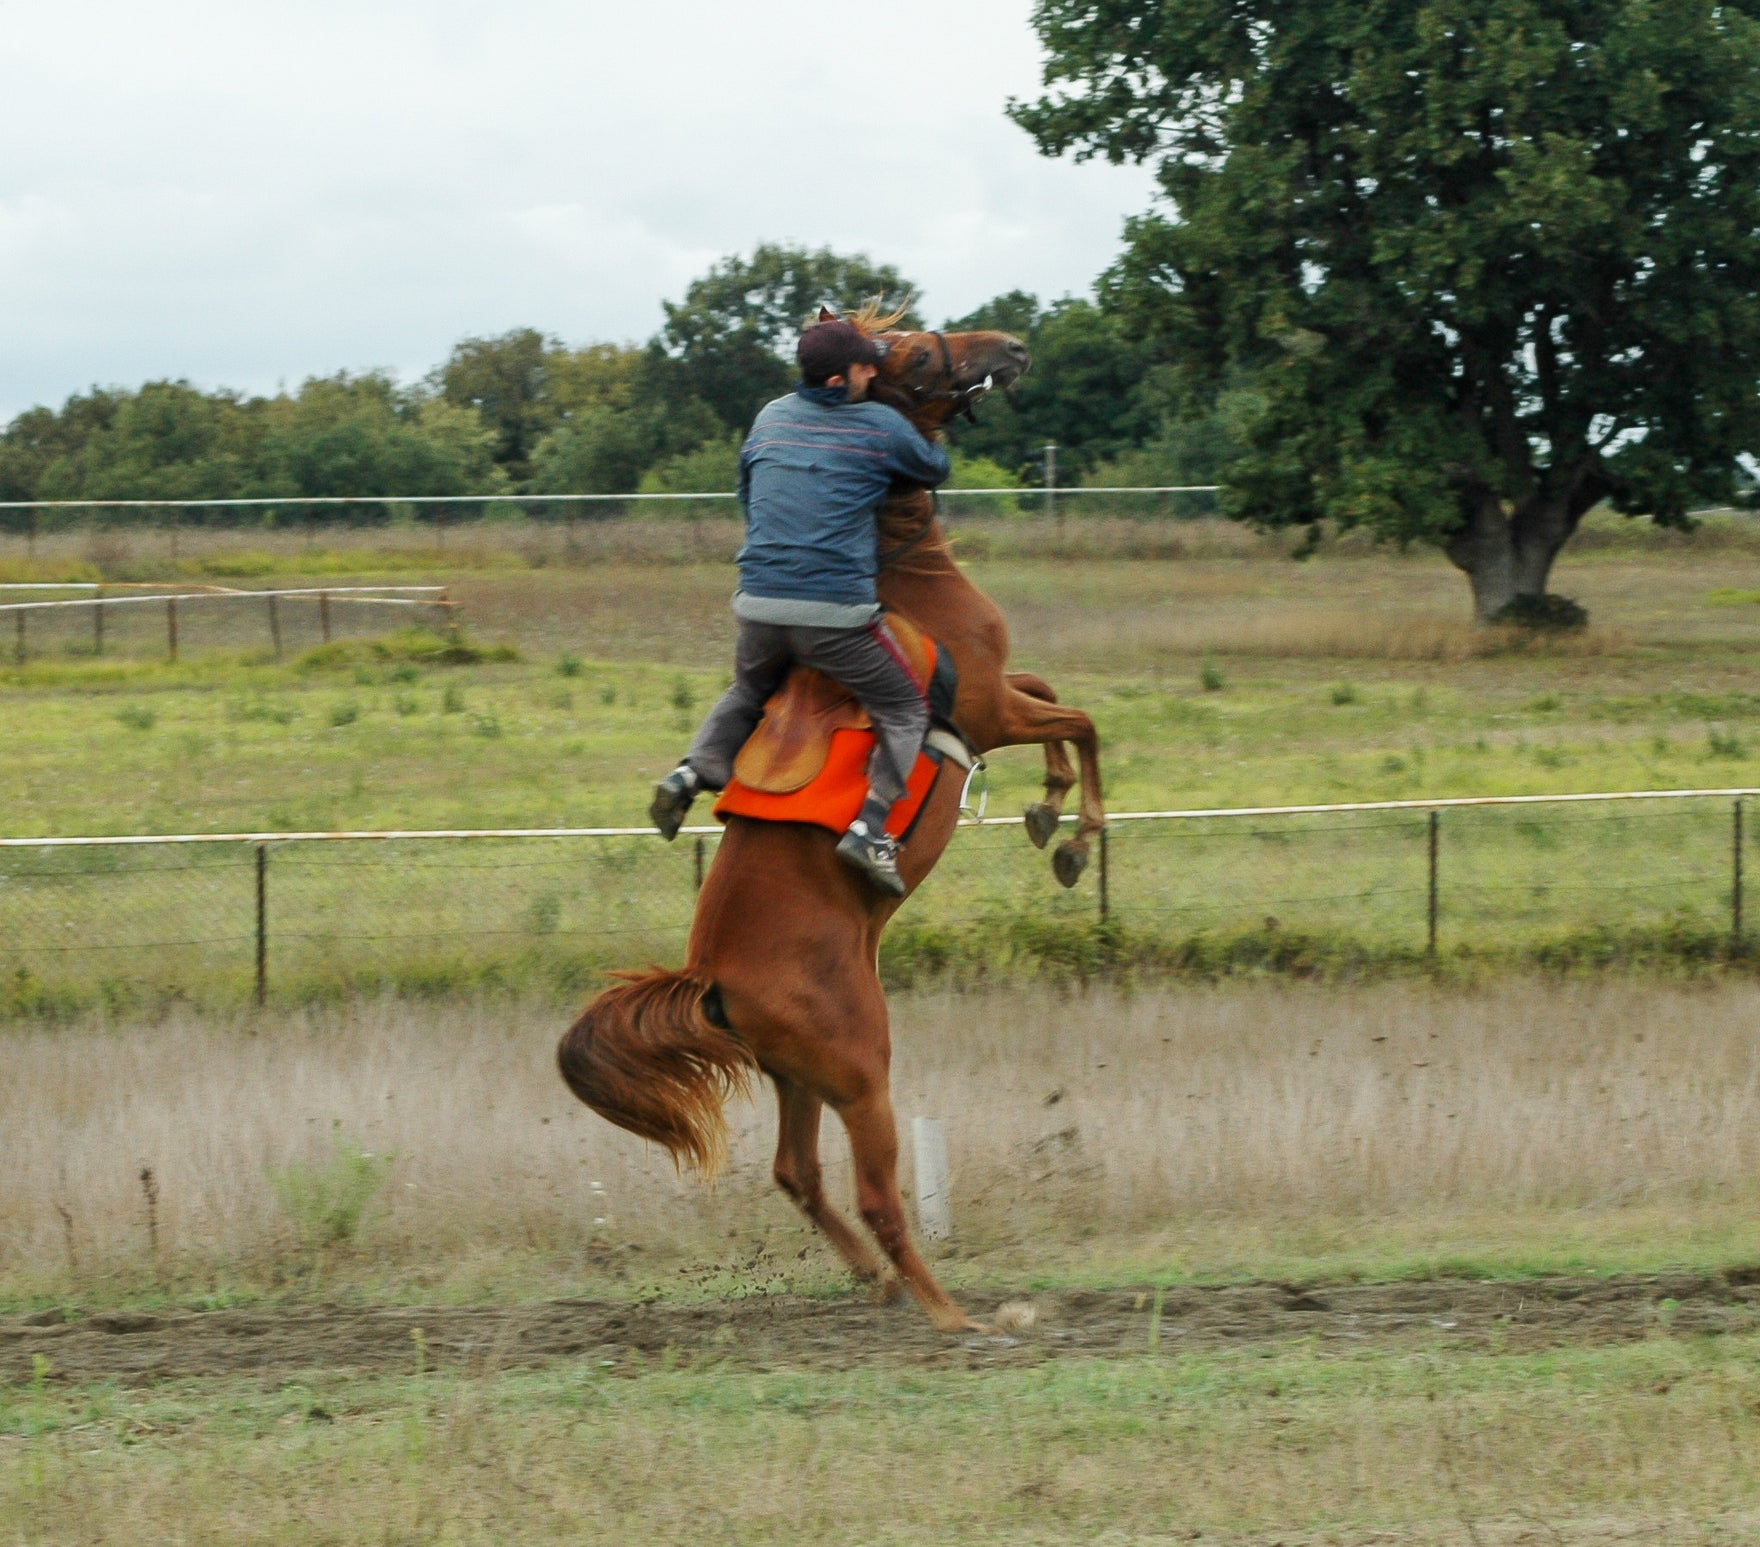 The reason I wear a helmet. Mastery Horsemanship